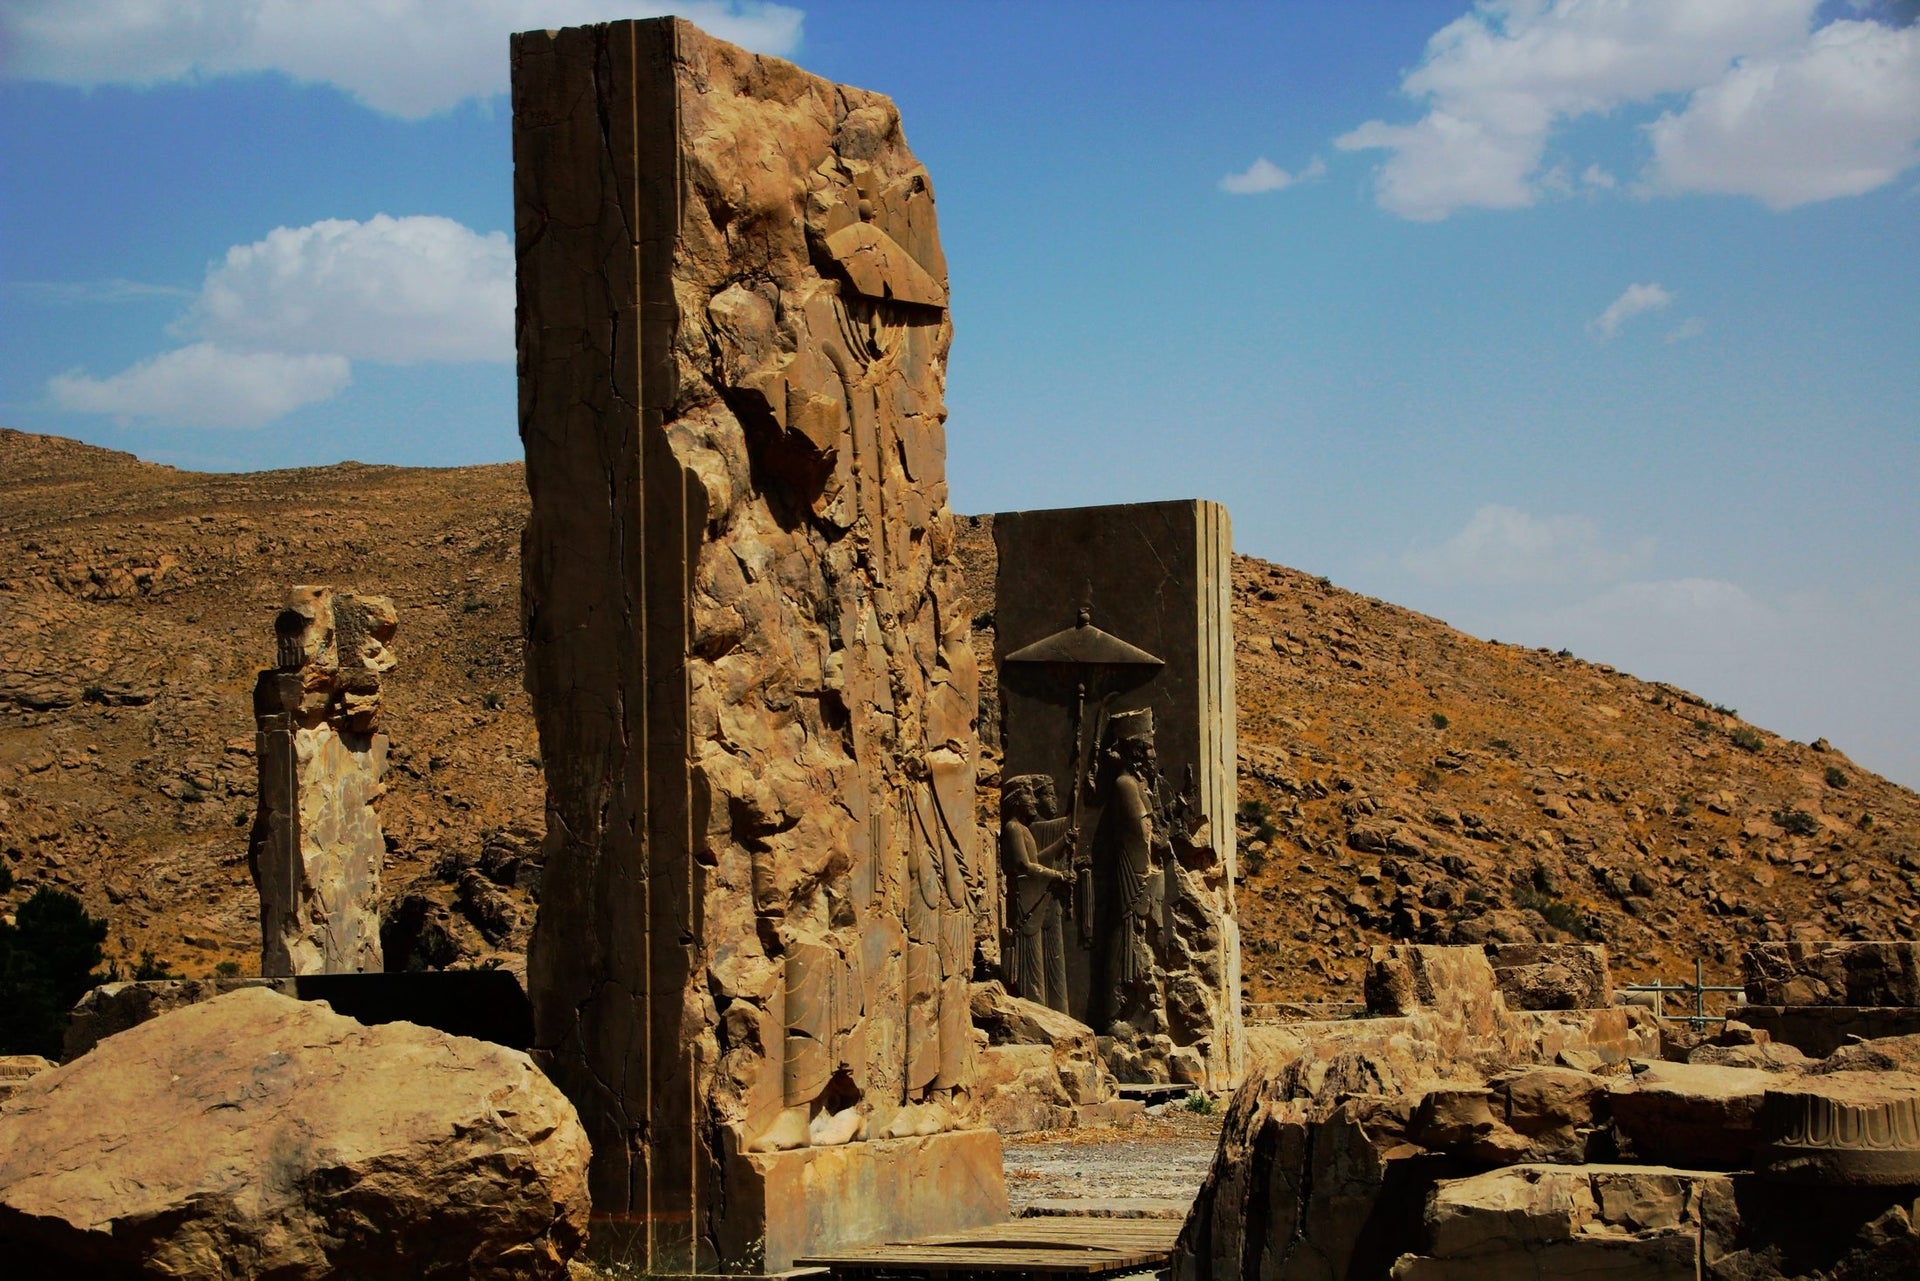 The archaeological site of Persepolis, Iran.